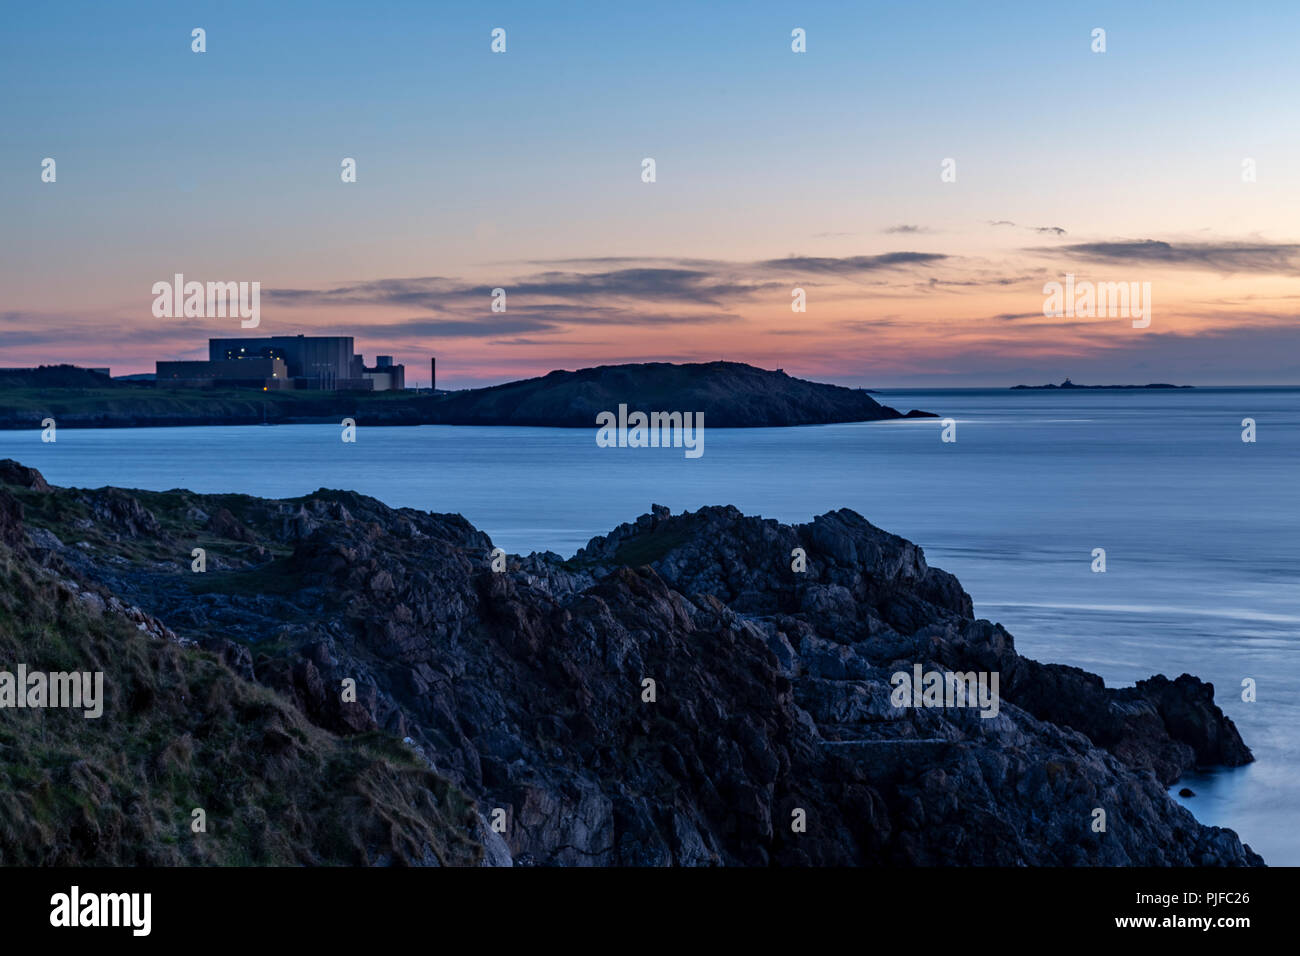 Wylfa nuclear power station at dusk, Anglesey on the North Wales coast - Stock Image